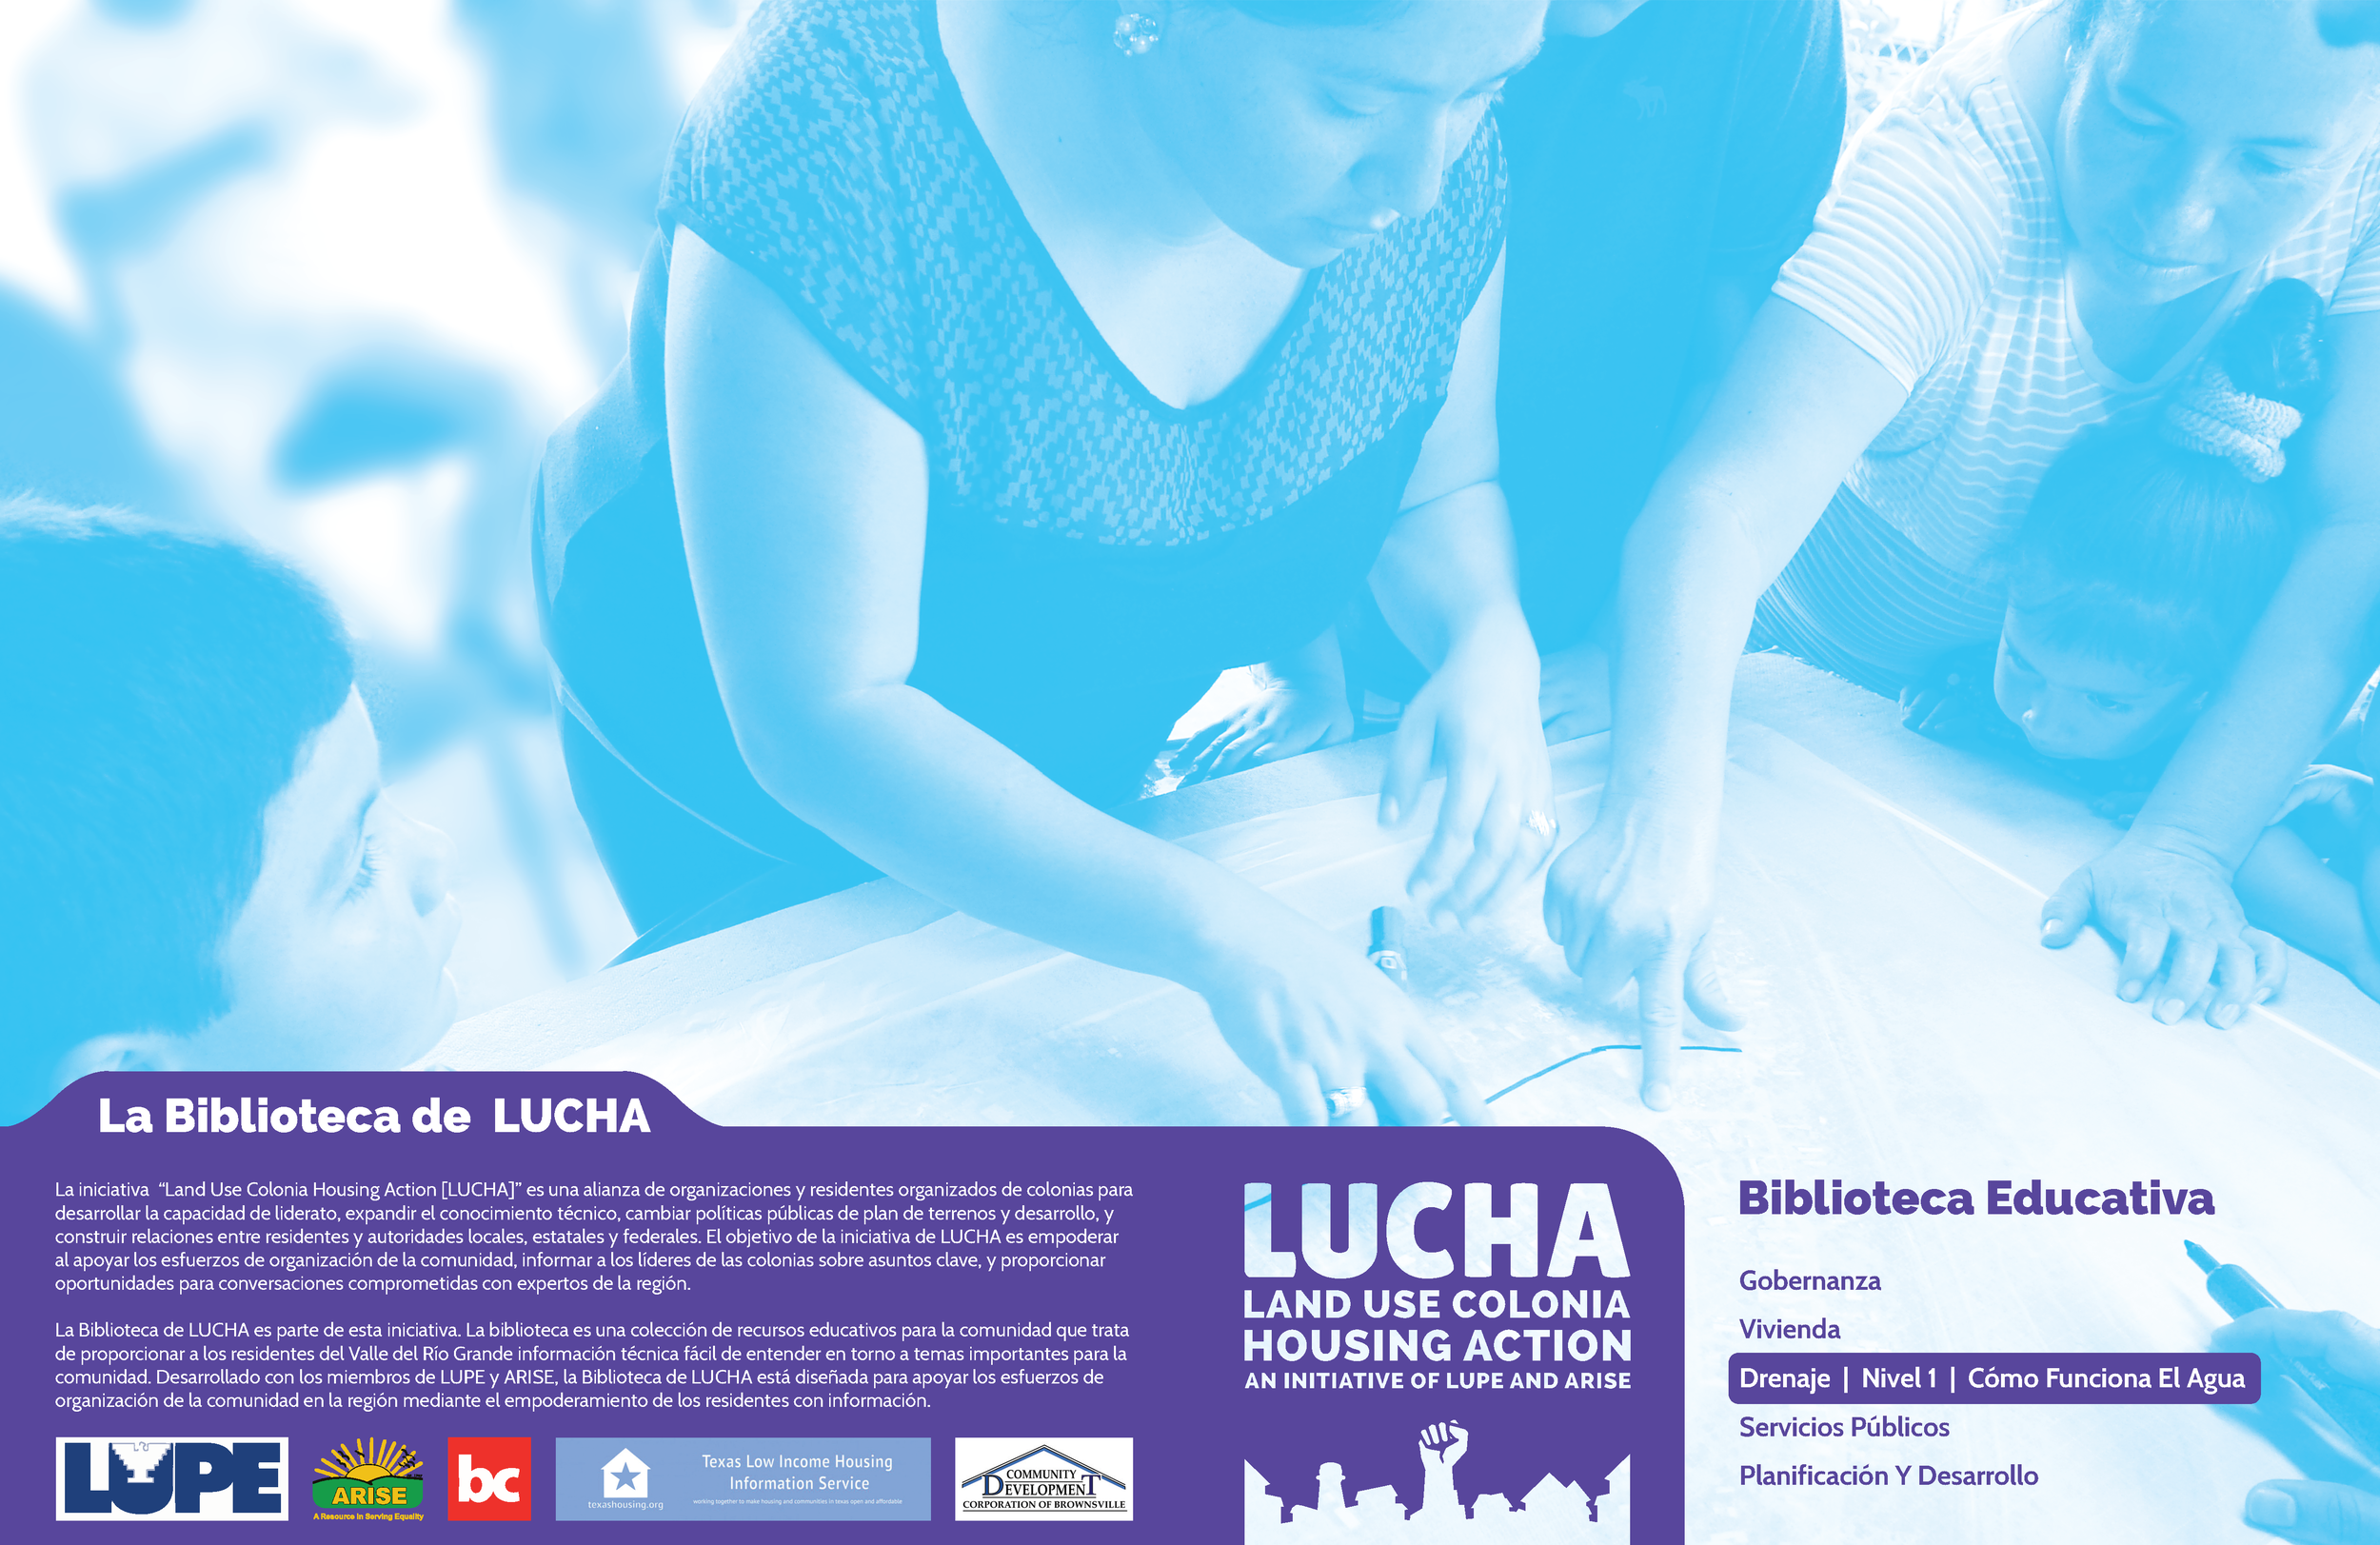 lucha-drainage-level-1-spanish-posters-170110_Page_1.png